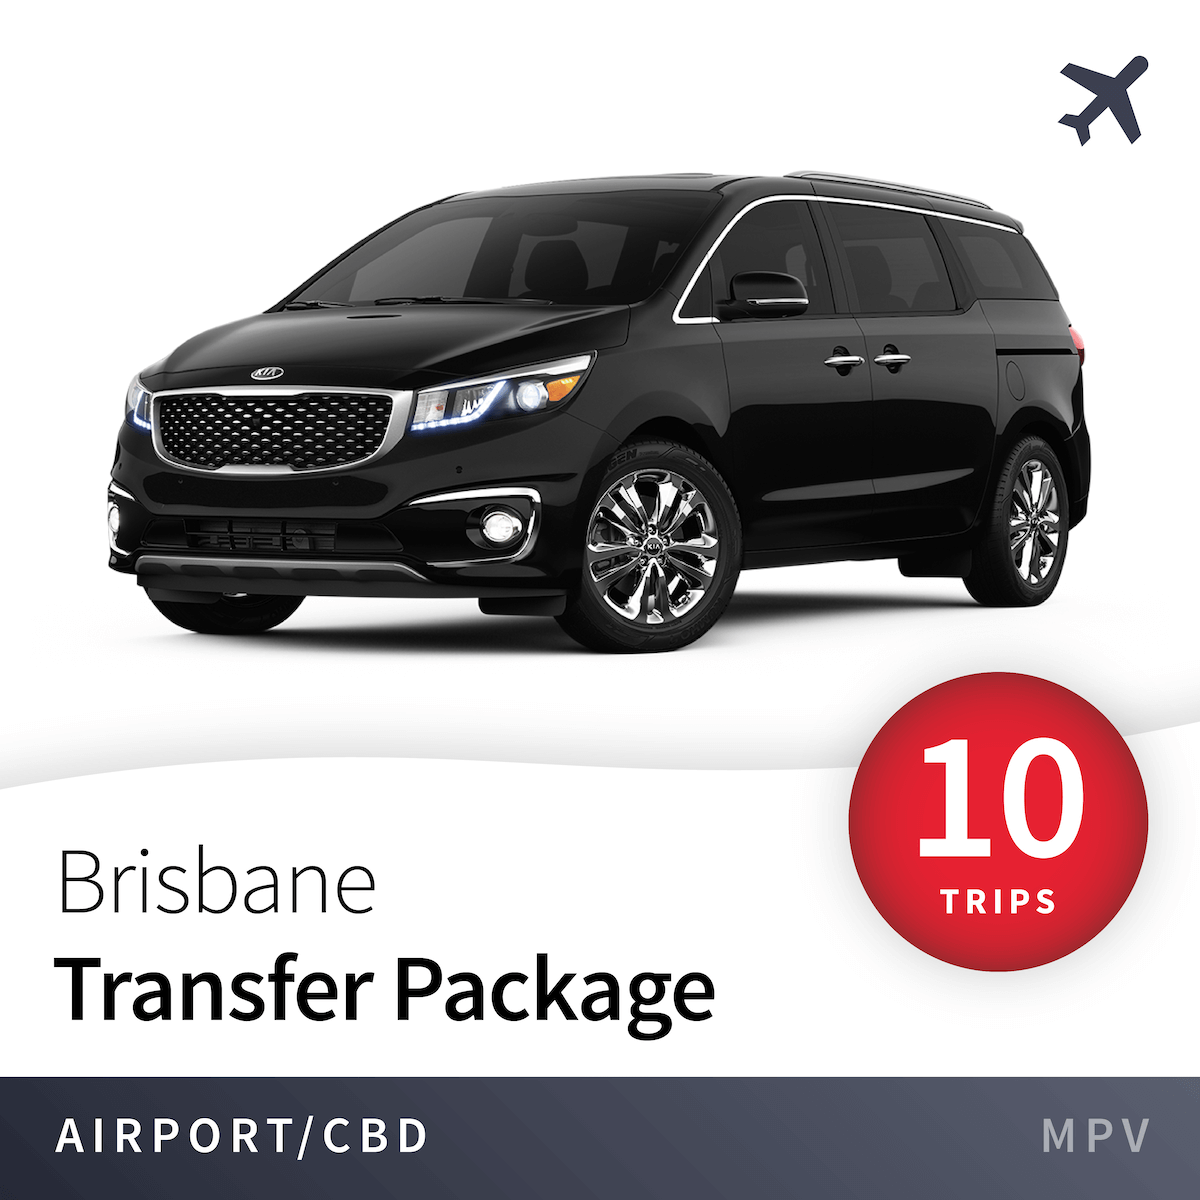 Brisbane Airport Transfer Package - MPV (10 Trips) 4